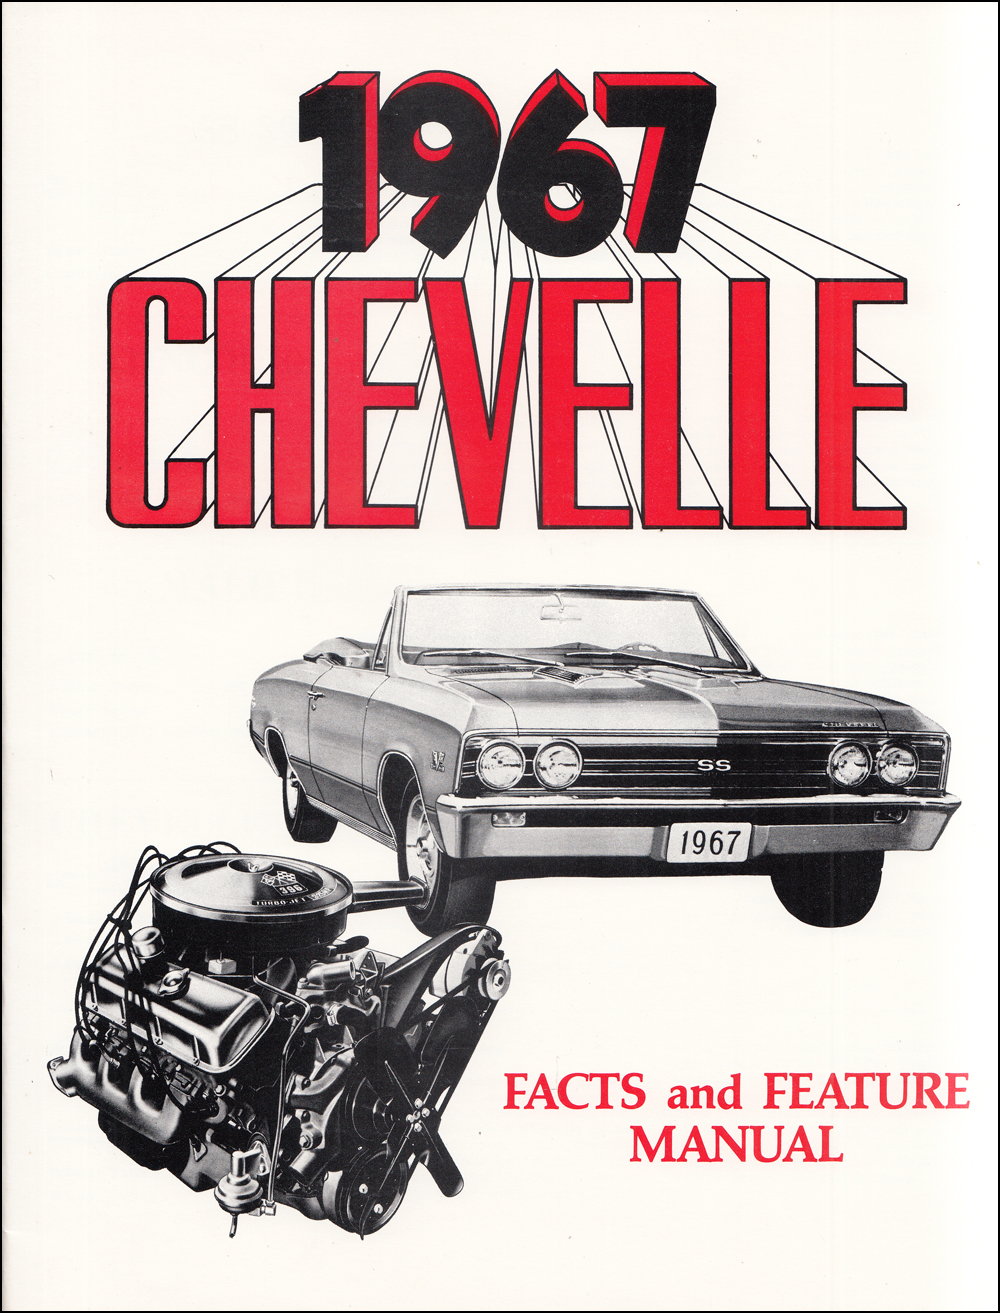 Diagram 1964 Chevelle Malibu El Camino Wiring Diagram Manual Reprint Full Version Hd Quality Manual Reprint Pvdiagramxbowes Ufficiestudi It